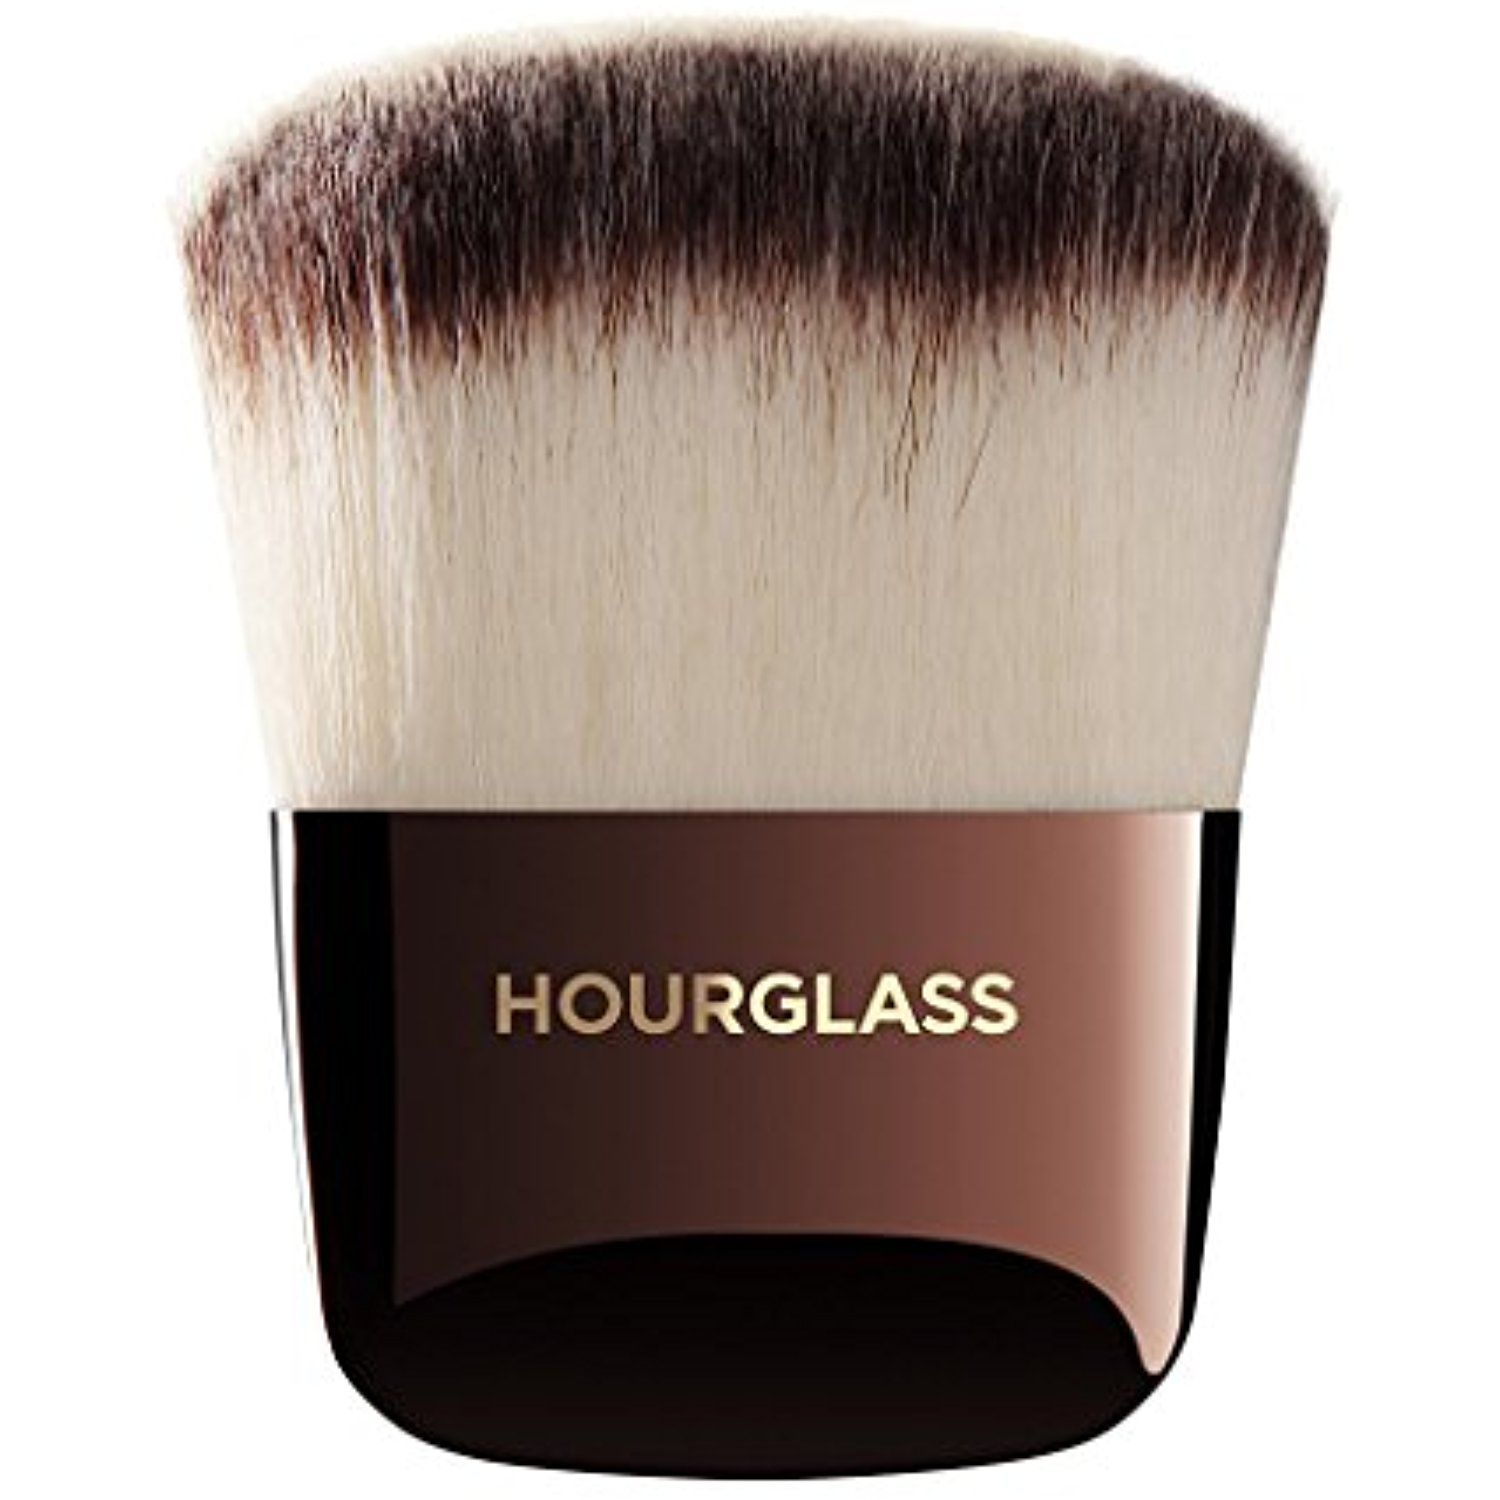 Hourglass Ambient Powder Brush Be sure to check out